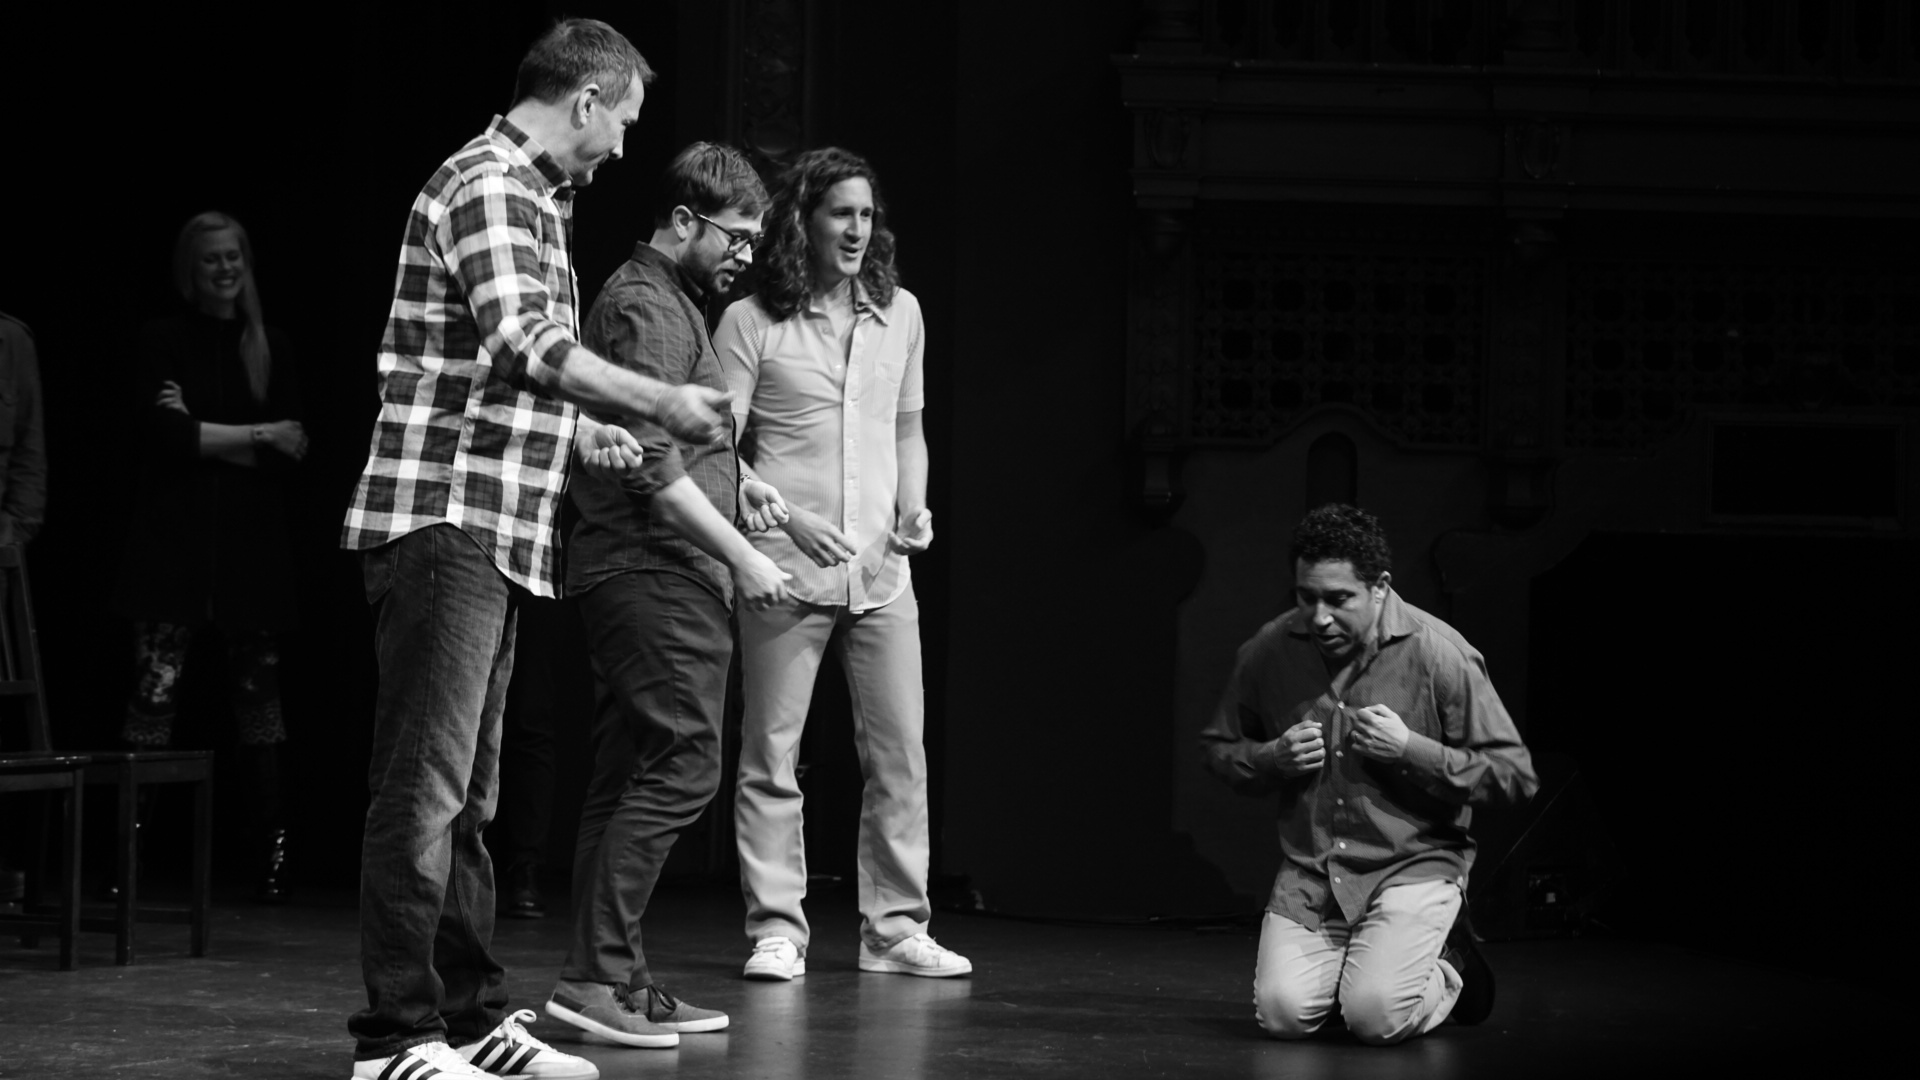 Michael Hitchcock, Cole Stratton, Ian Brennan and Oscar Nunez at Theme Park at SF Sketchfest 2016. Photo by Steve Agee.